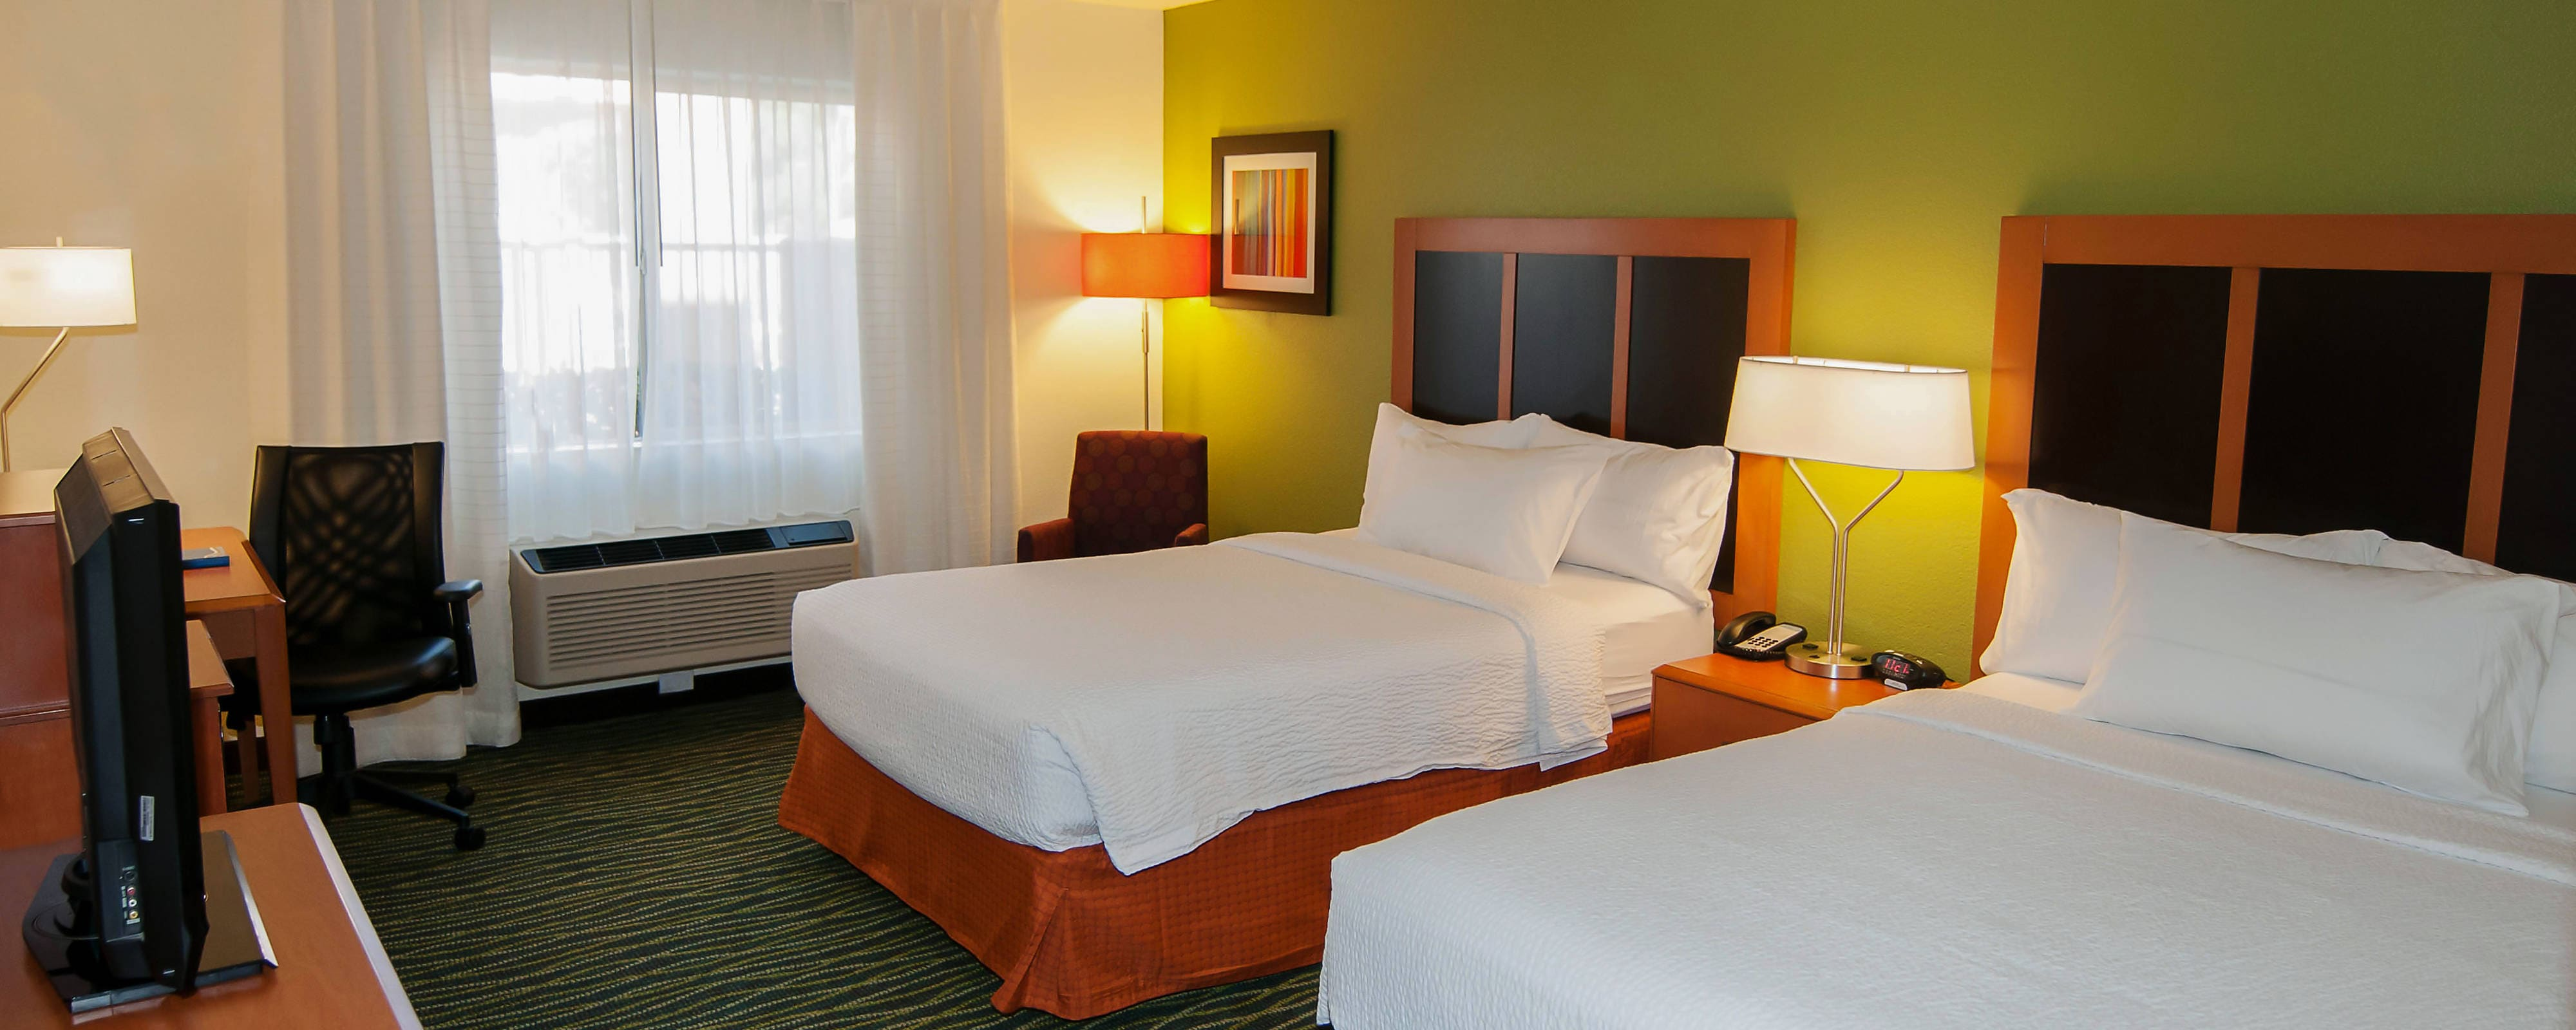 Hotelzimmer im Fairfield Inn St. George Utah